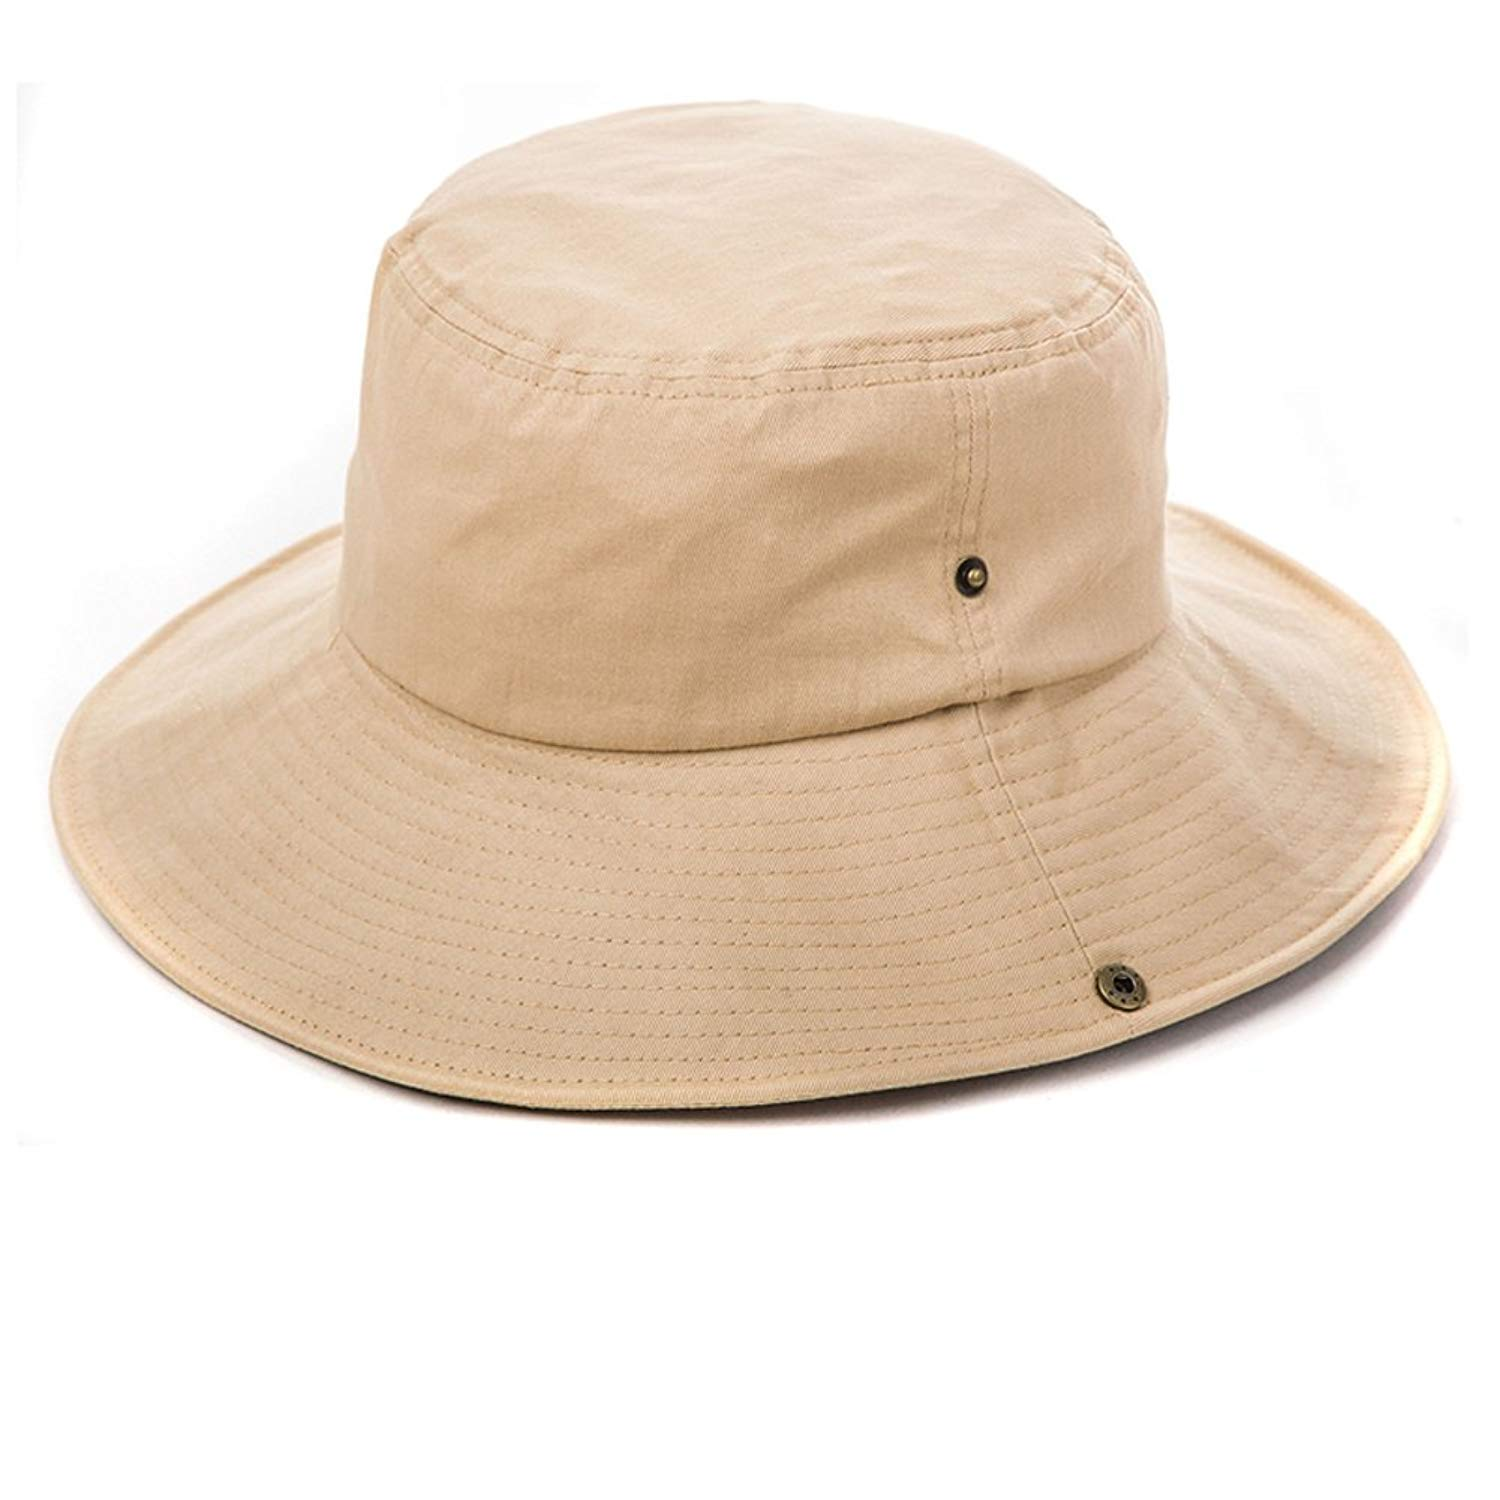 men's hat / sunscreen Sunhat/Outdoor mens hats/Big bucket Hat/anti-ultraviolet-proof hats/SPF Sun hats